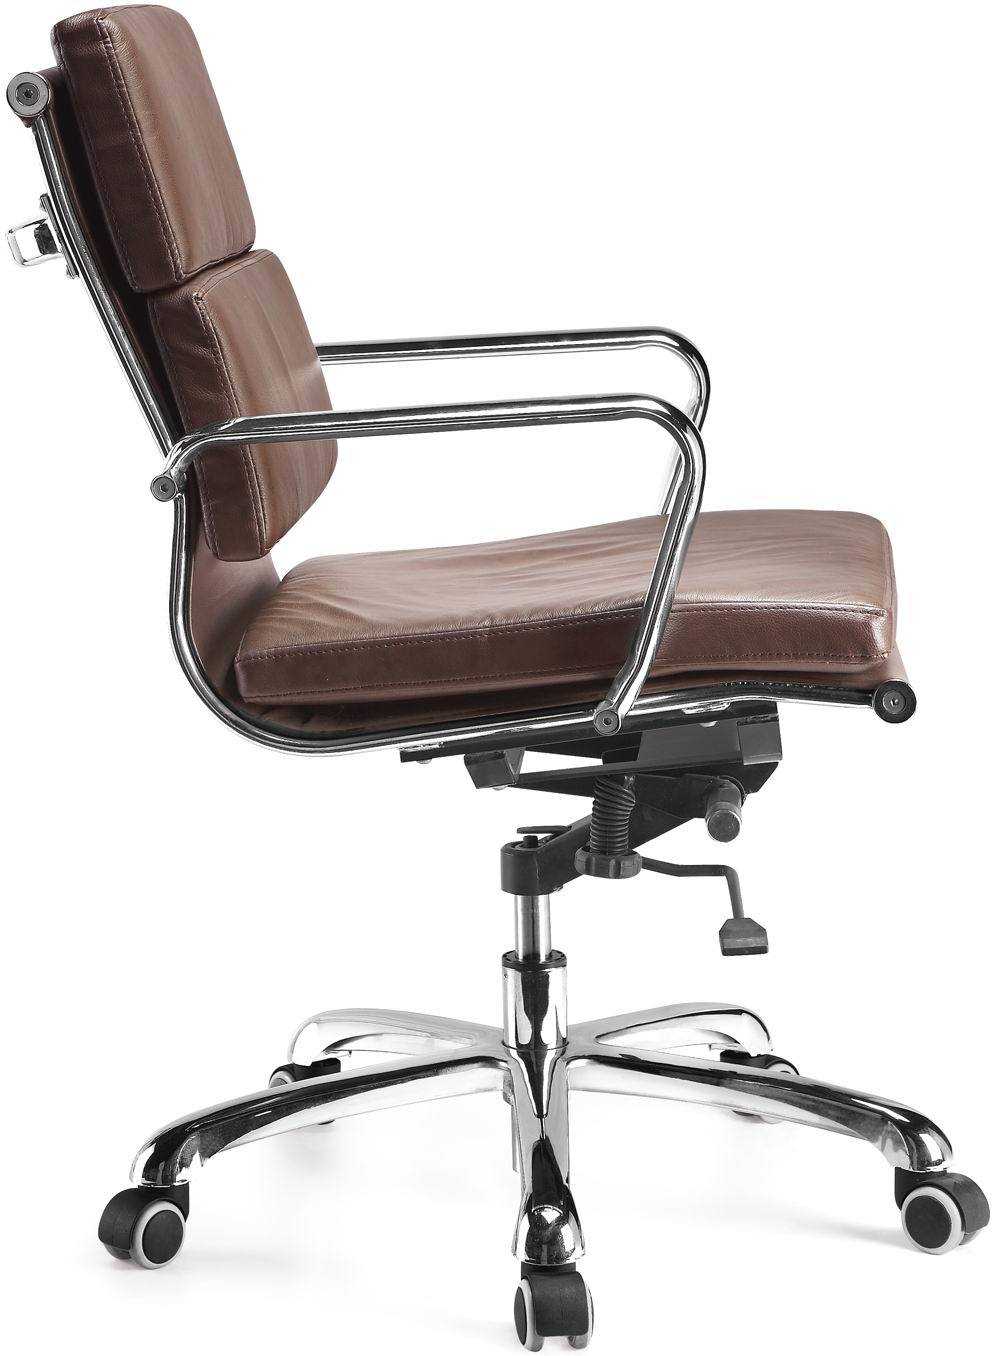 china 96b eames office chair china chair eames office chair. Black Bedroom Furniture Sets. Home Design Ideas